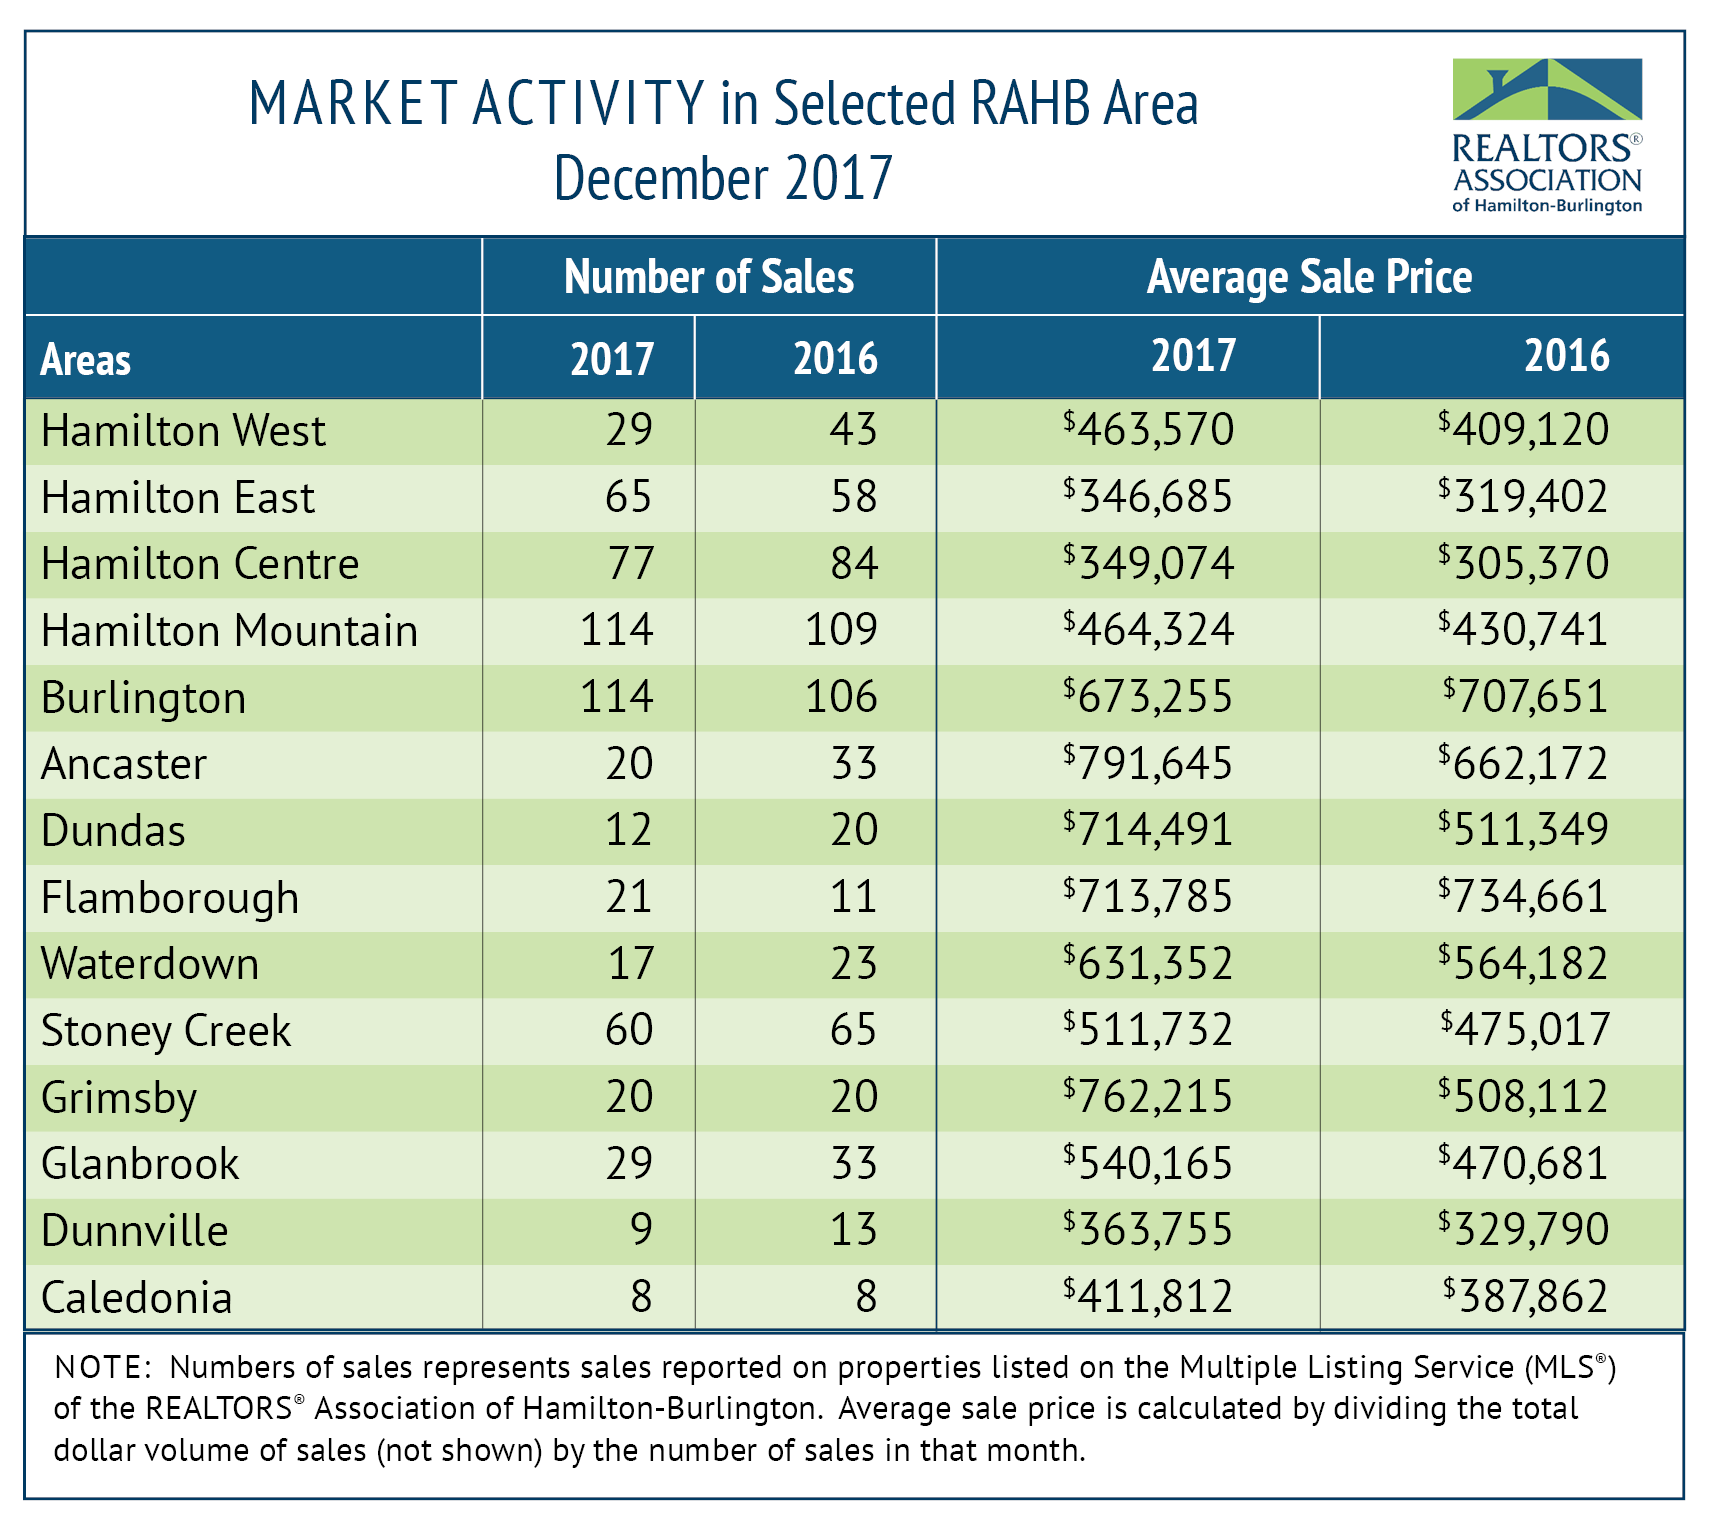 RAHB-Market-Activity-January-2018